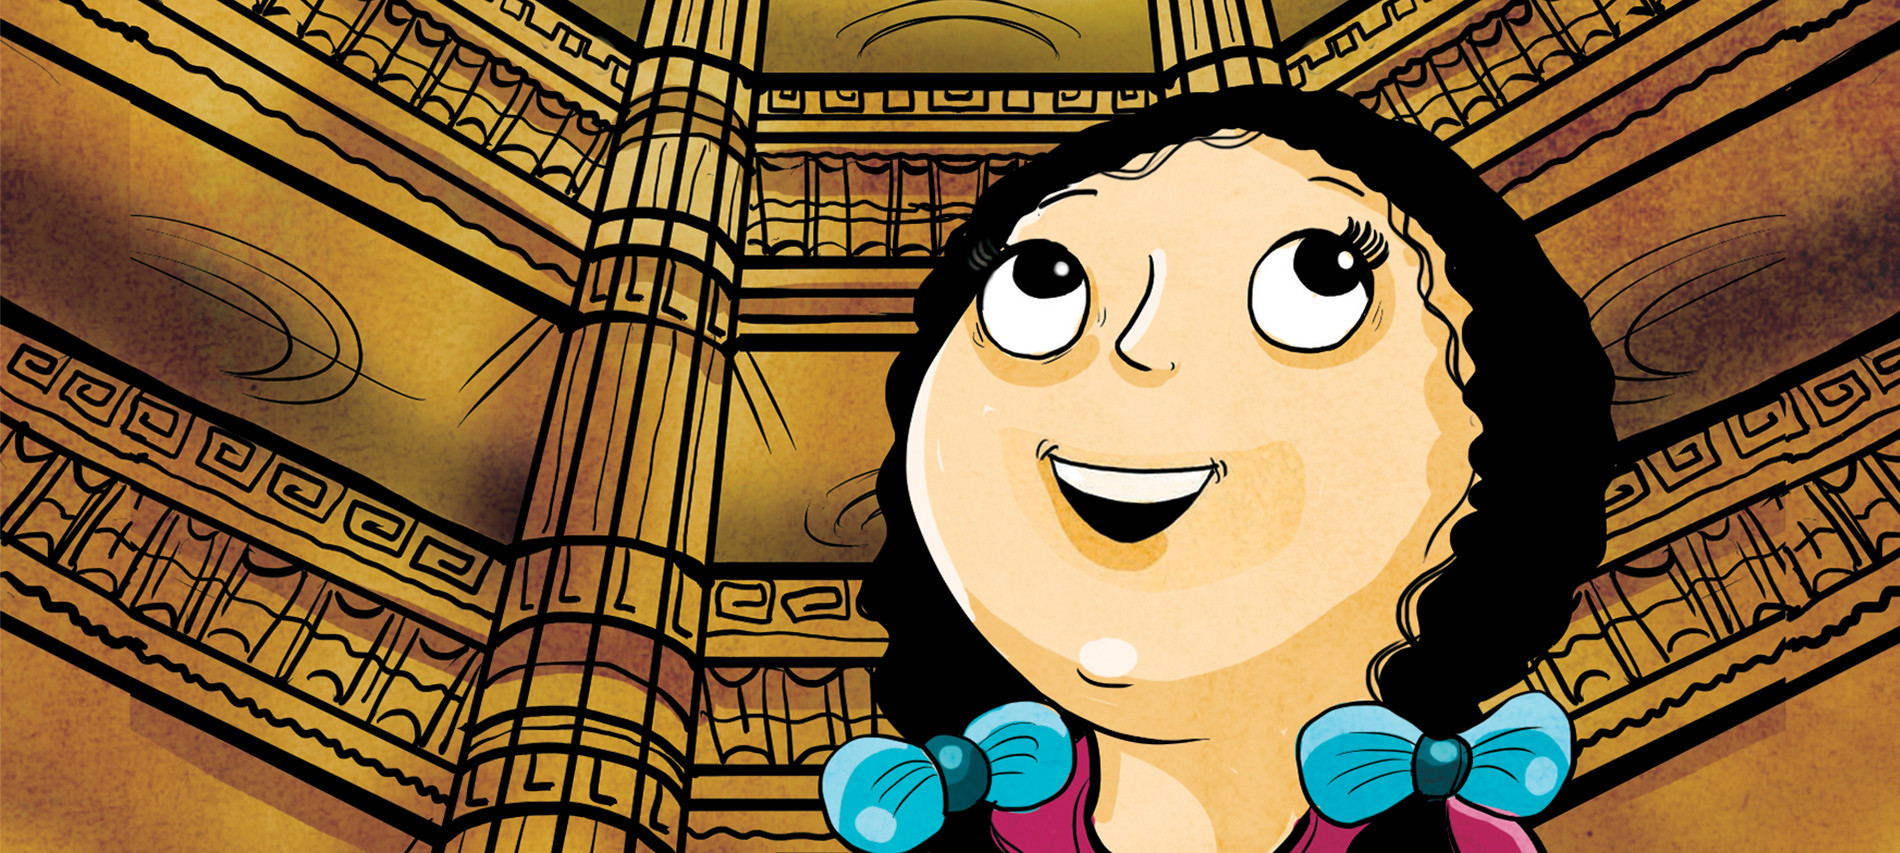 A Kingdom Destroyed Over a Magical Stepwell: 'The Magic of the Lost Temple' — An Excerpt